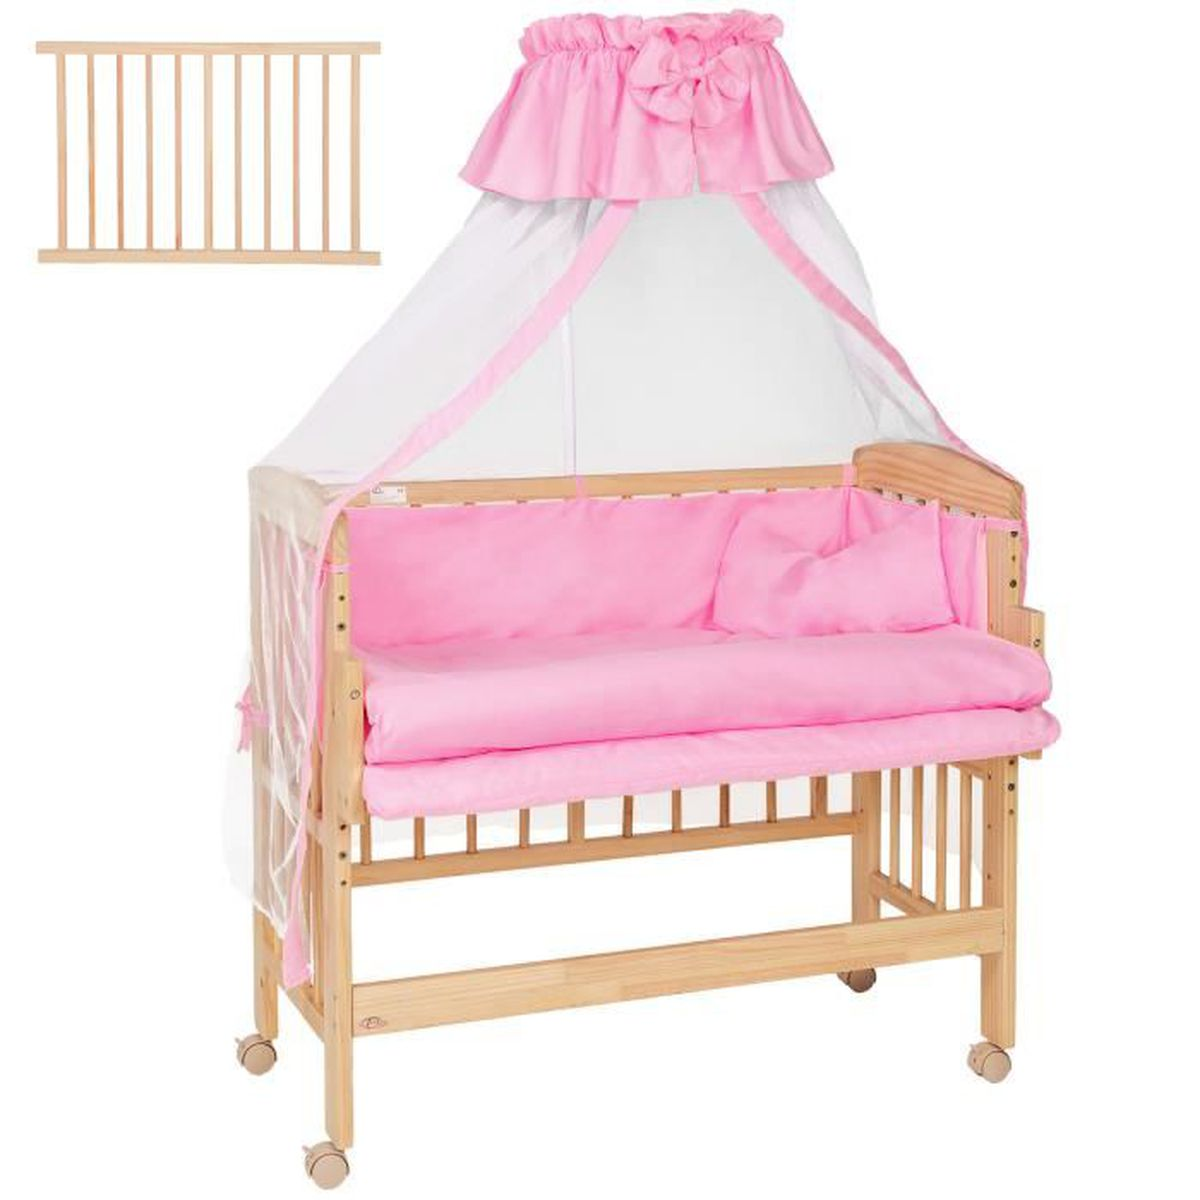 lit b b lit enfant lit d appoint lit baldaquin en bois convertible rose tectake rose rose. Black Bedroom Furniture Sets. Home Design Ideas